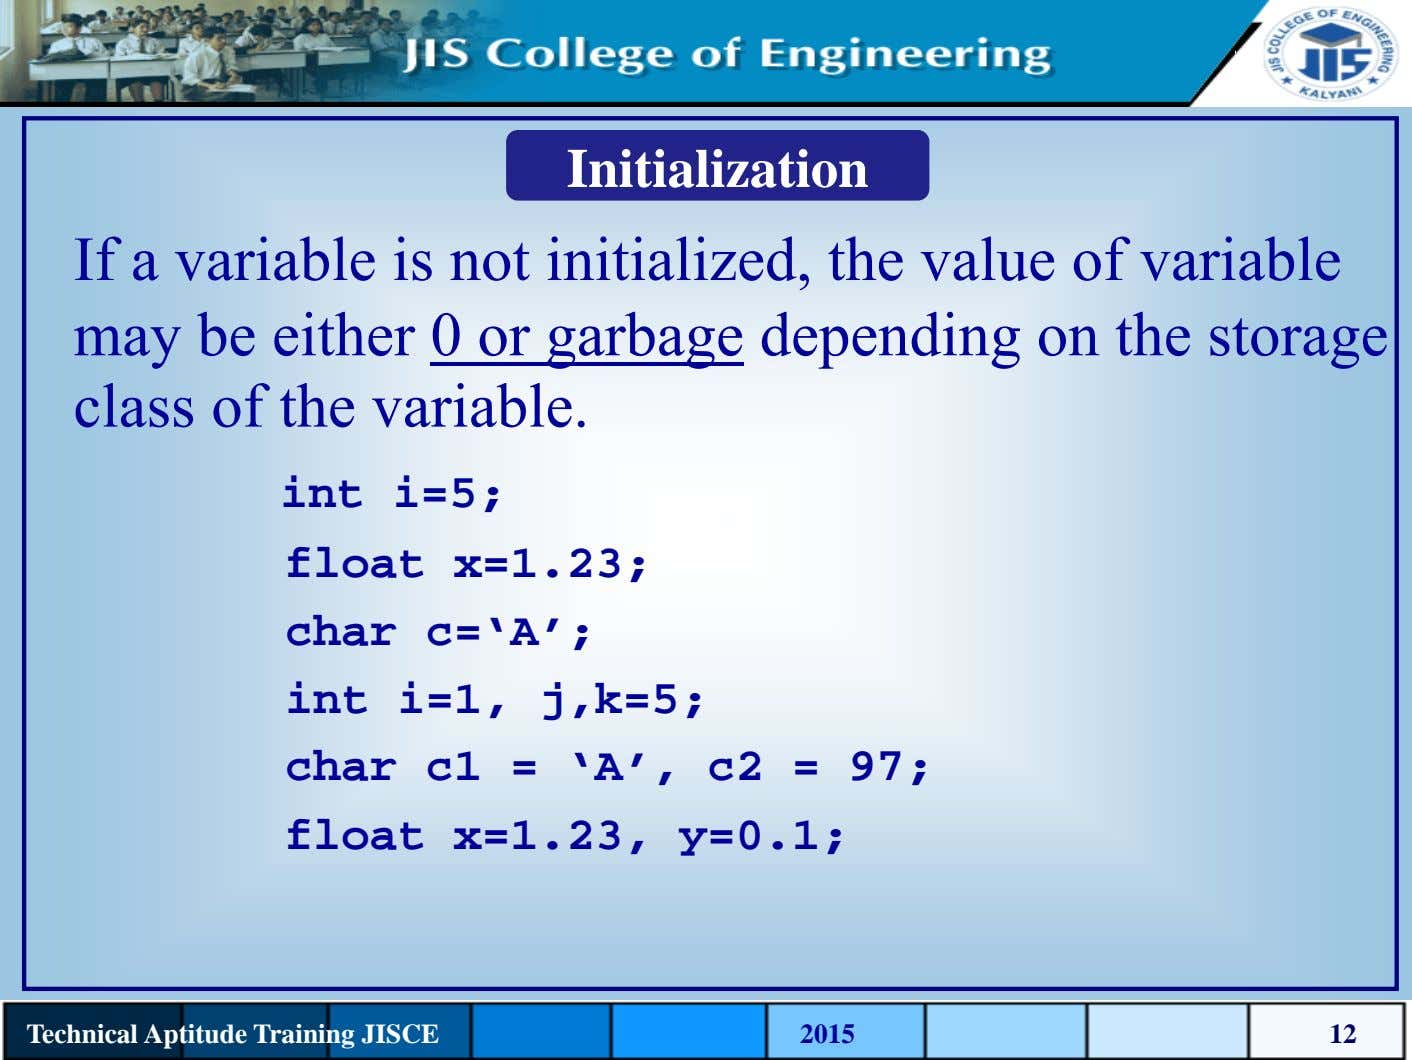 Initialization If a variable is not initialized, the value of variable may be either 0